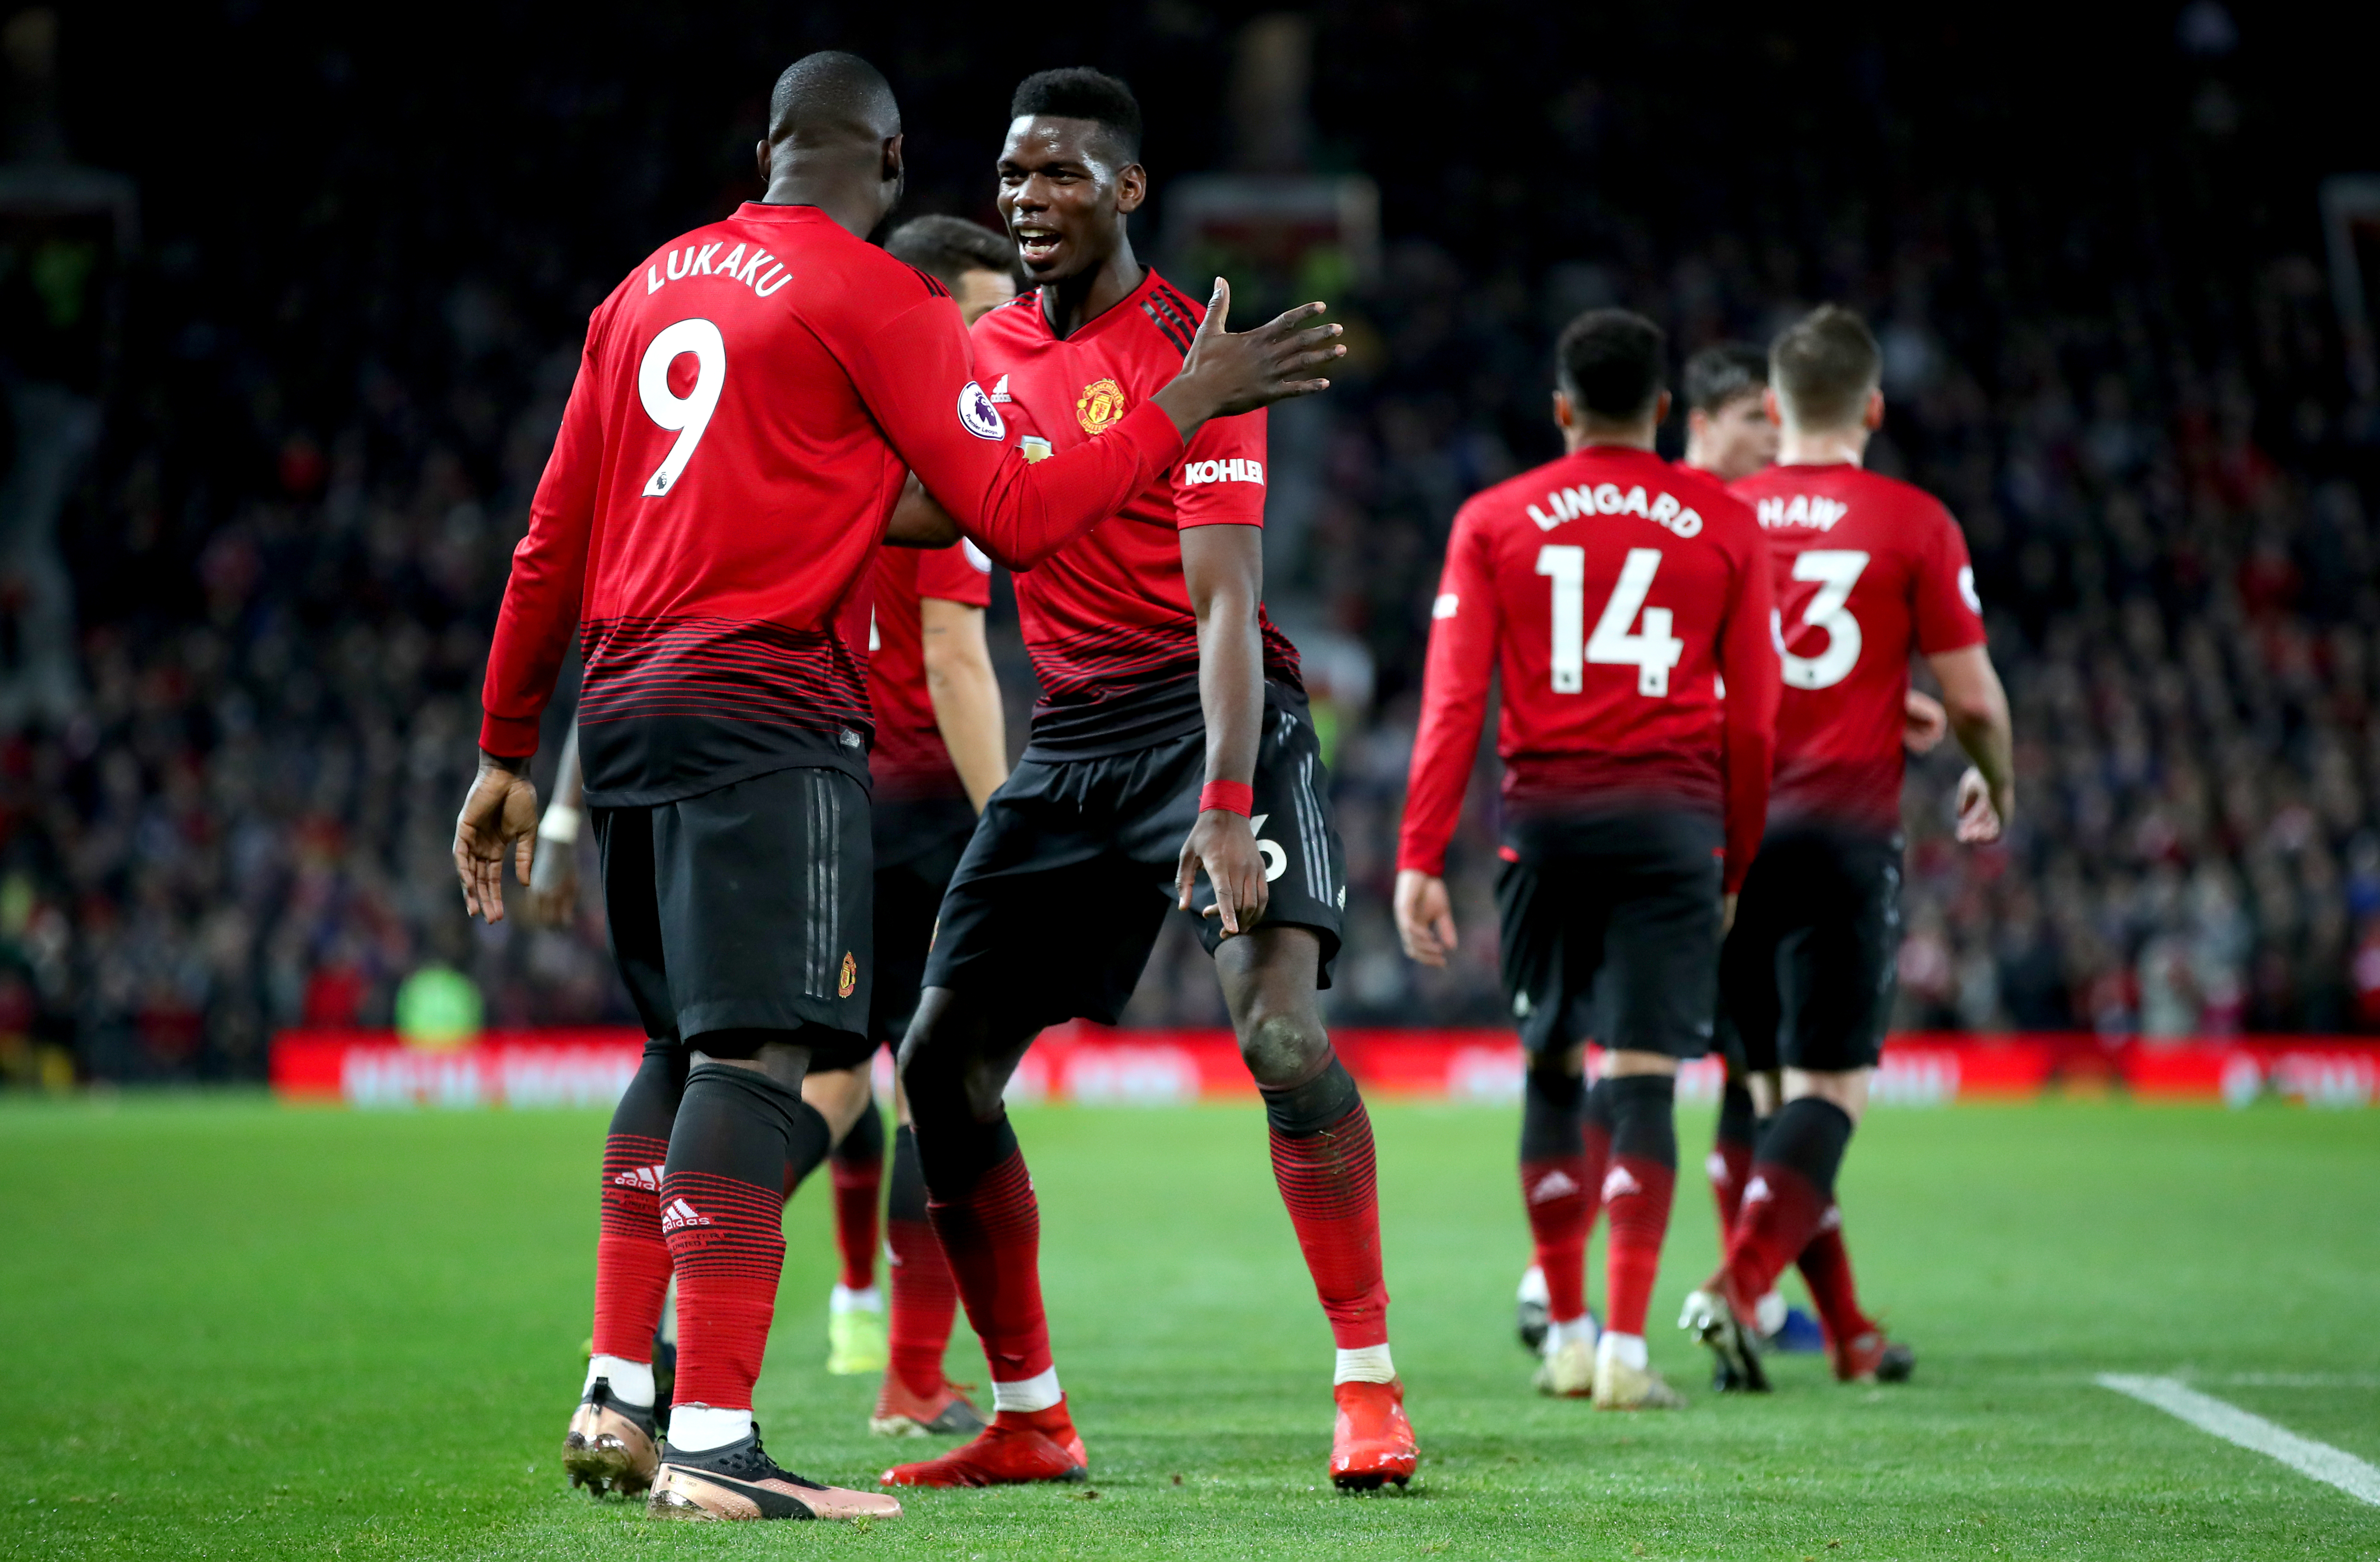 Pogba celebrates his second goal against Bournemouth. Image: PA Images